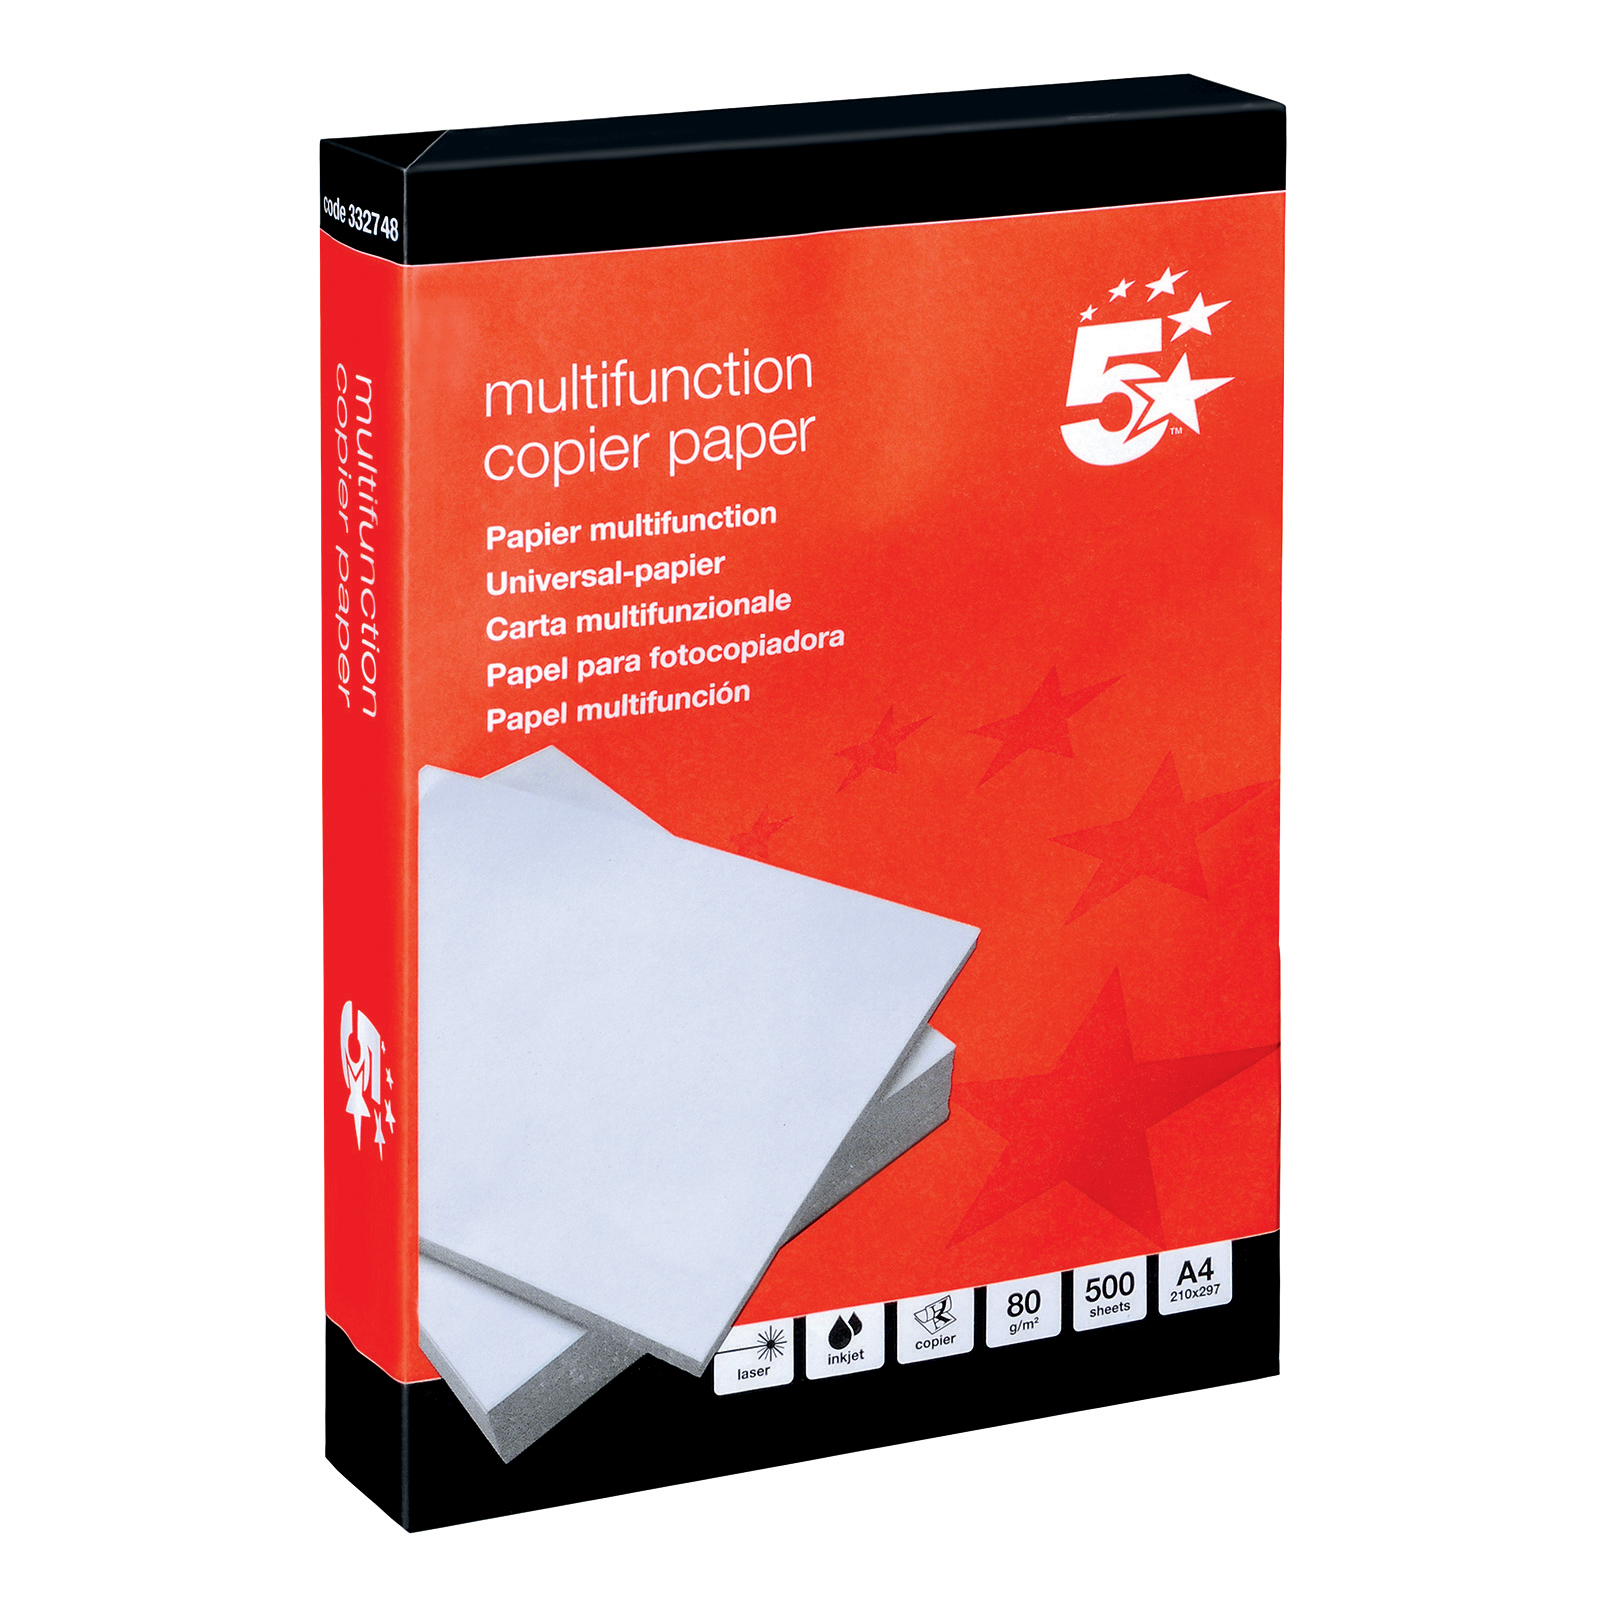 5 Star Office Copier Paper Multifunctional Ream-Wrapped 80gsm A4 White 500 Sheets